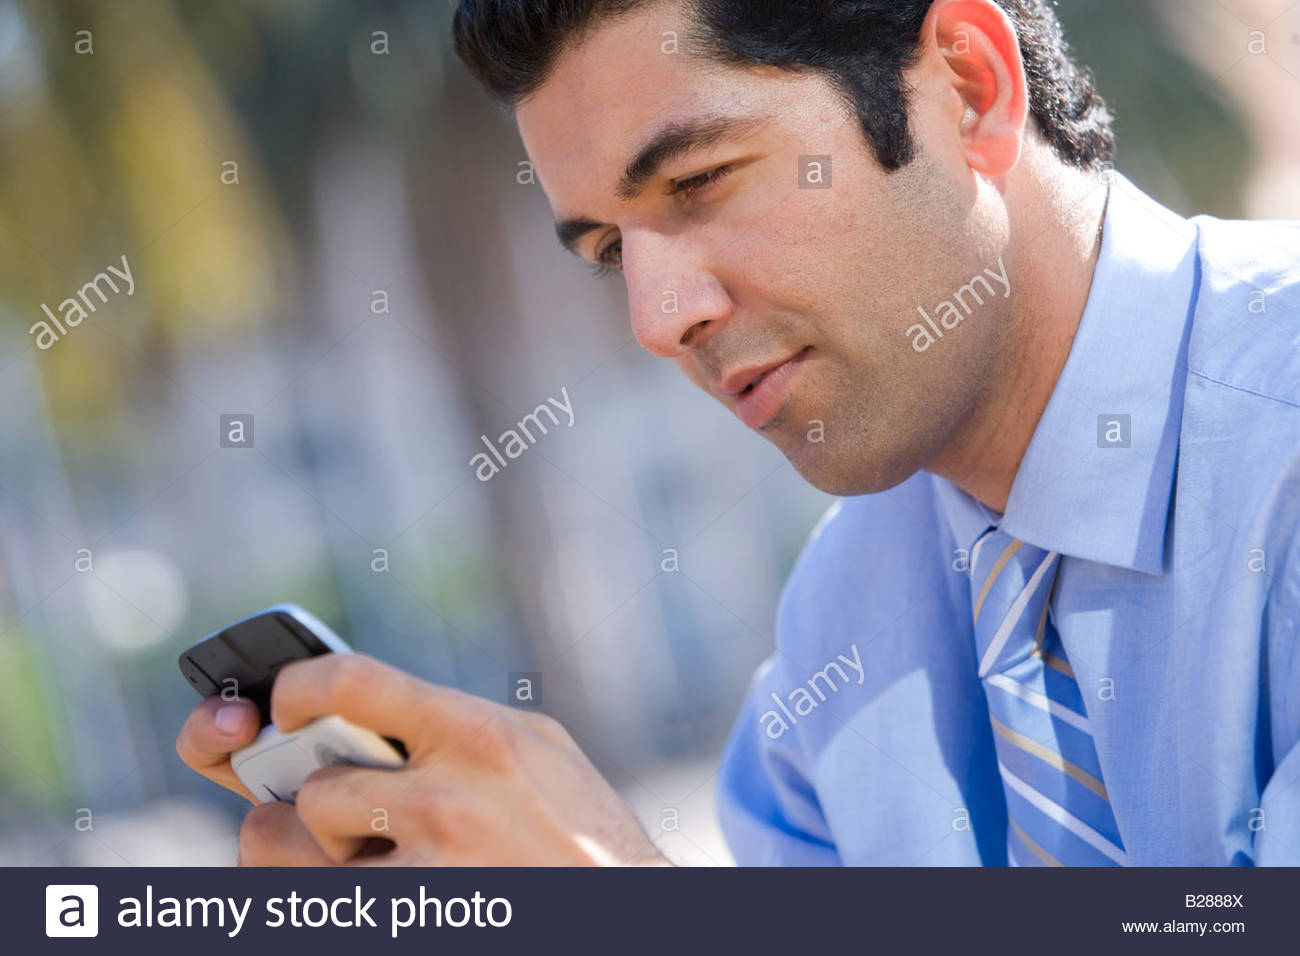 Businessman checking text messages on cell phone - Stock Image